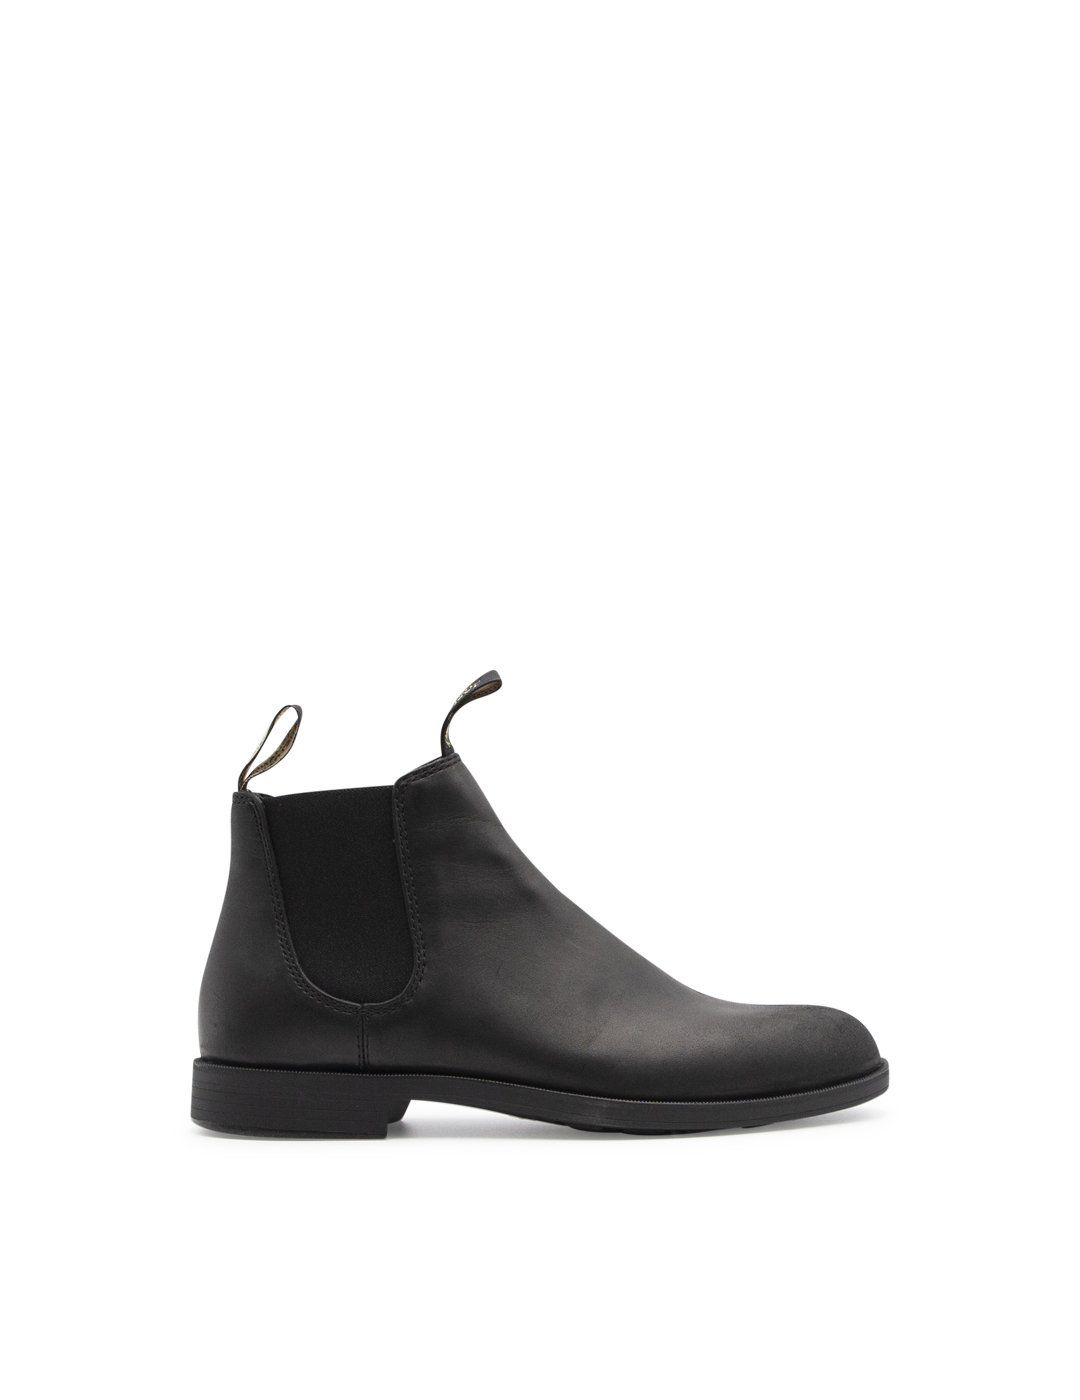 Blundstone Leathers BLUNDSTONE MEN'S BLACK LEATHER ANKLE BOOTS